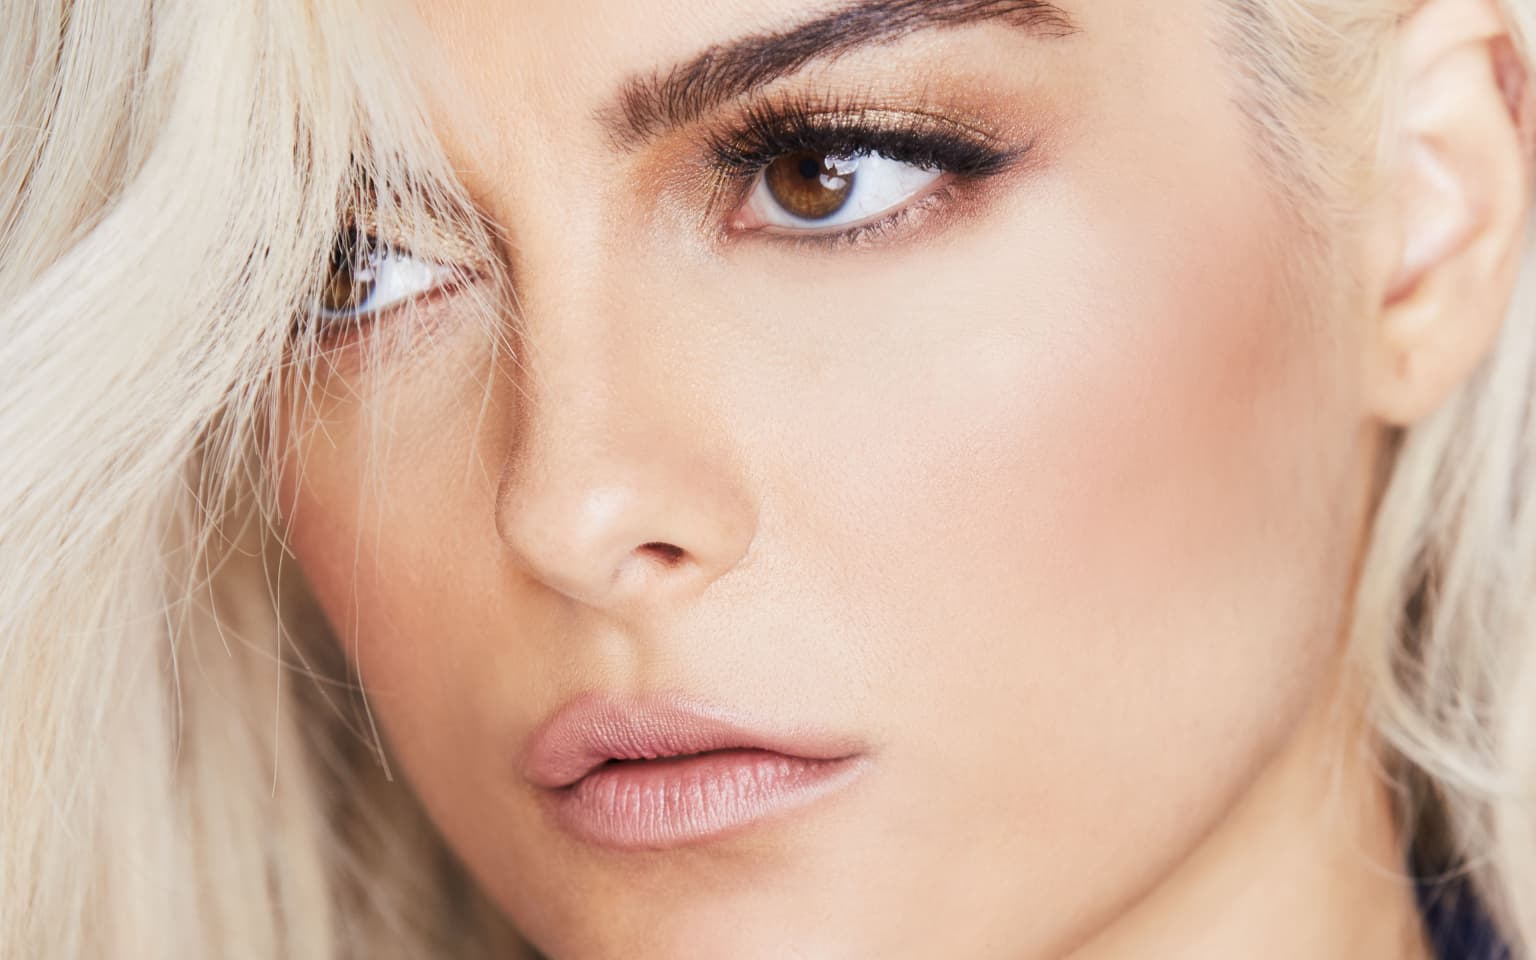 At Home with Bebe Rexha